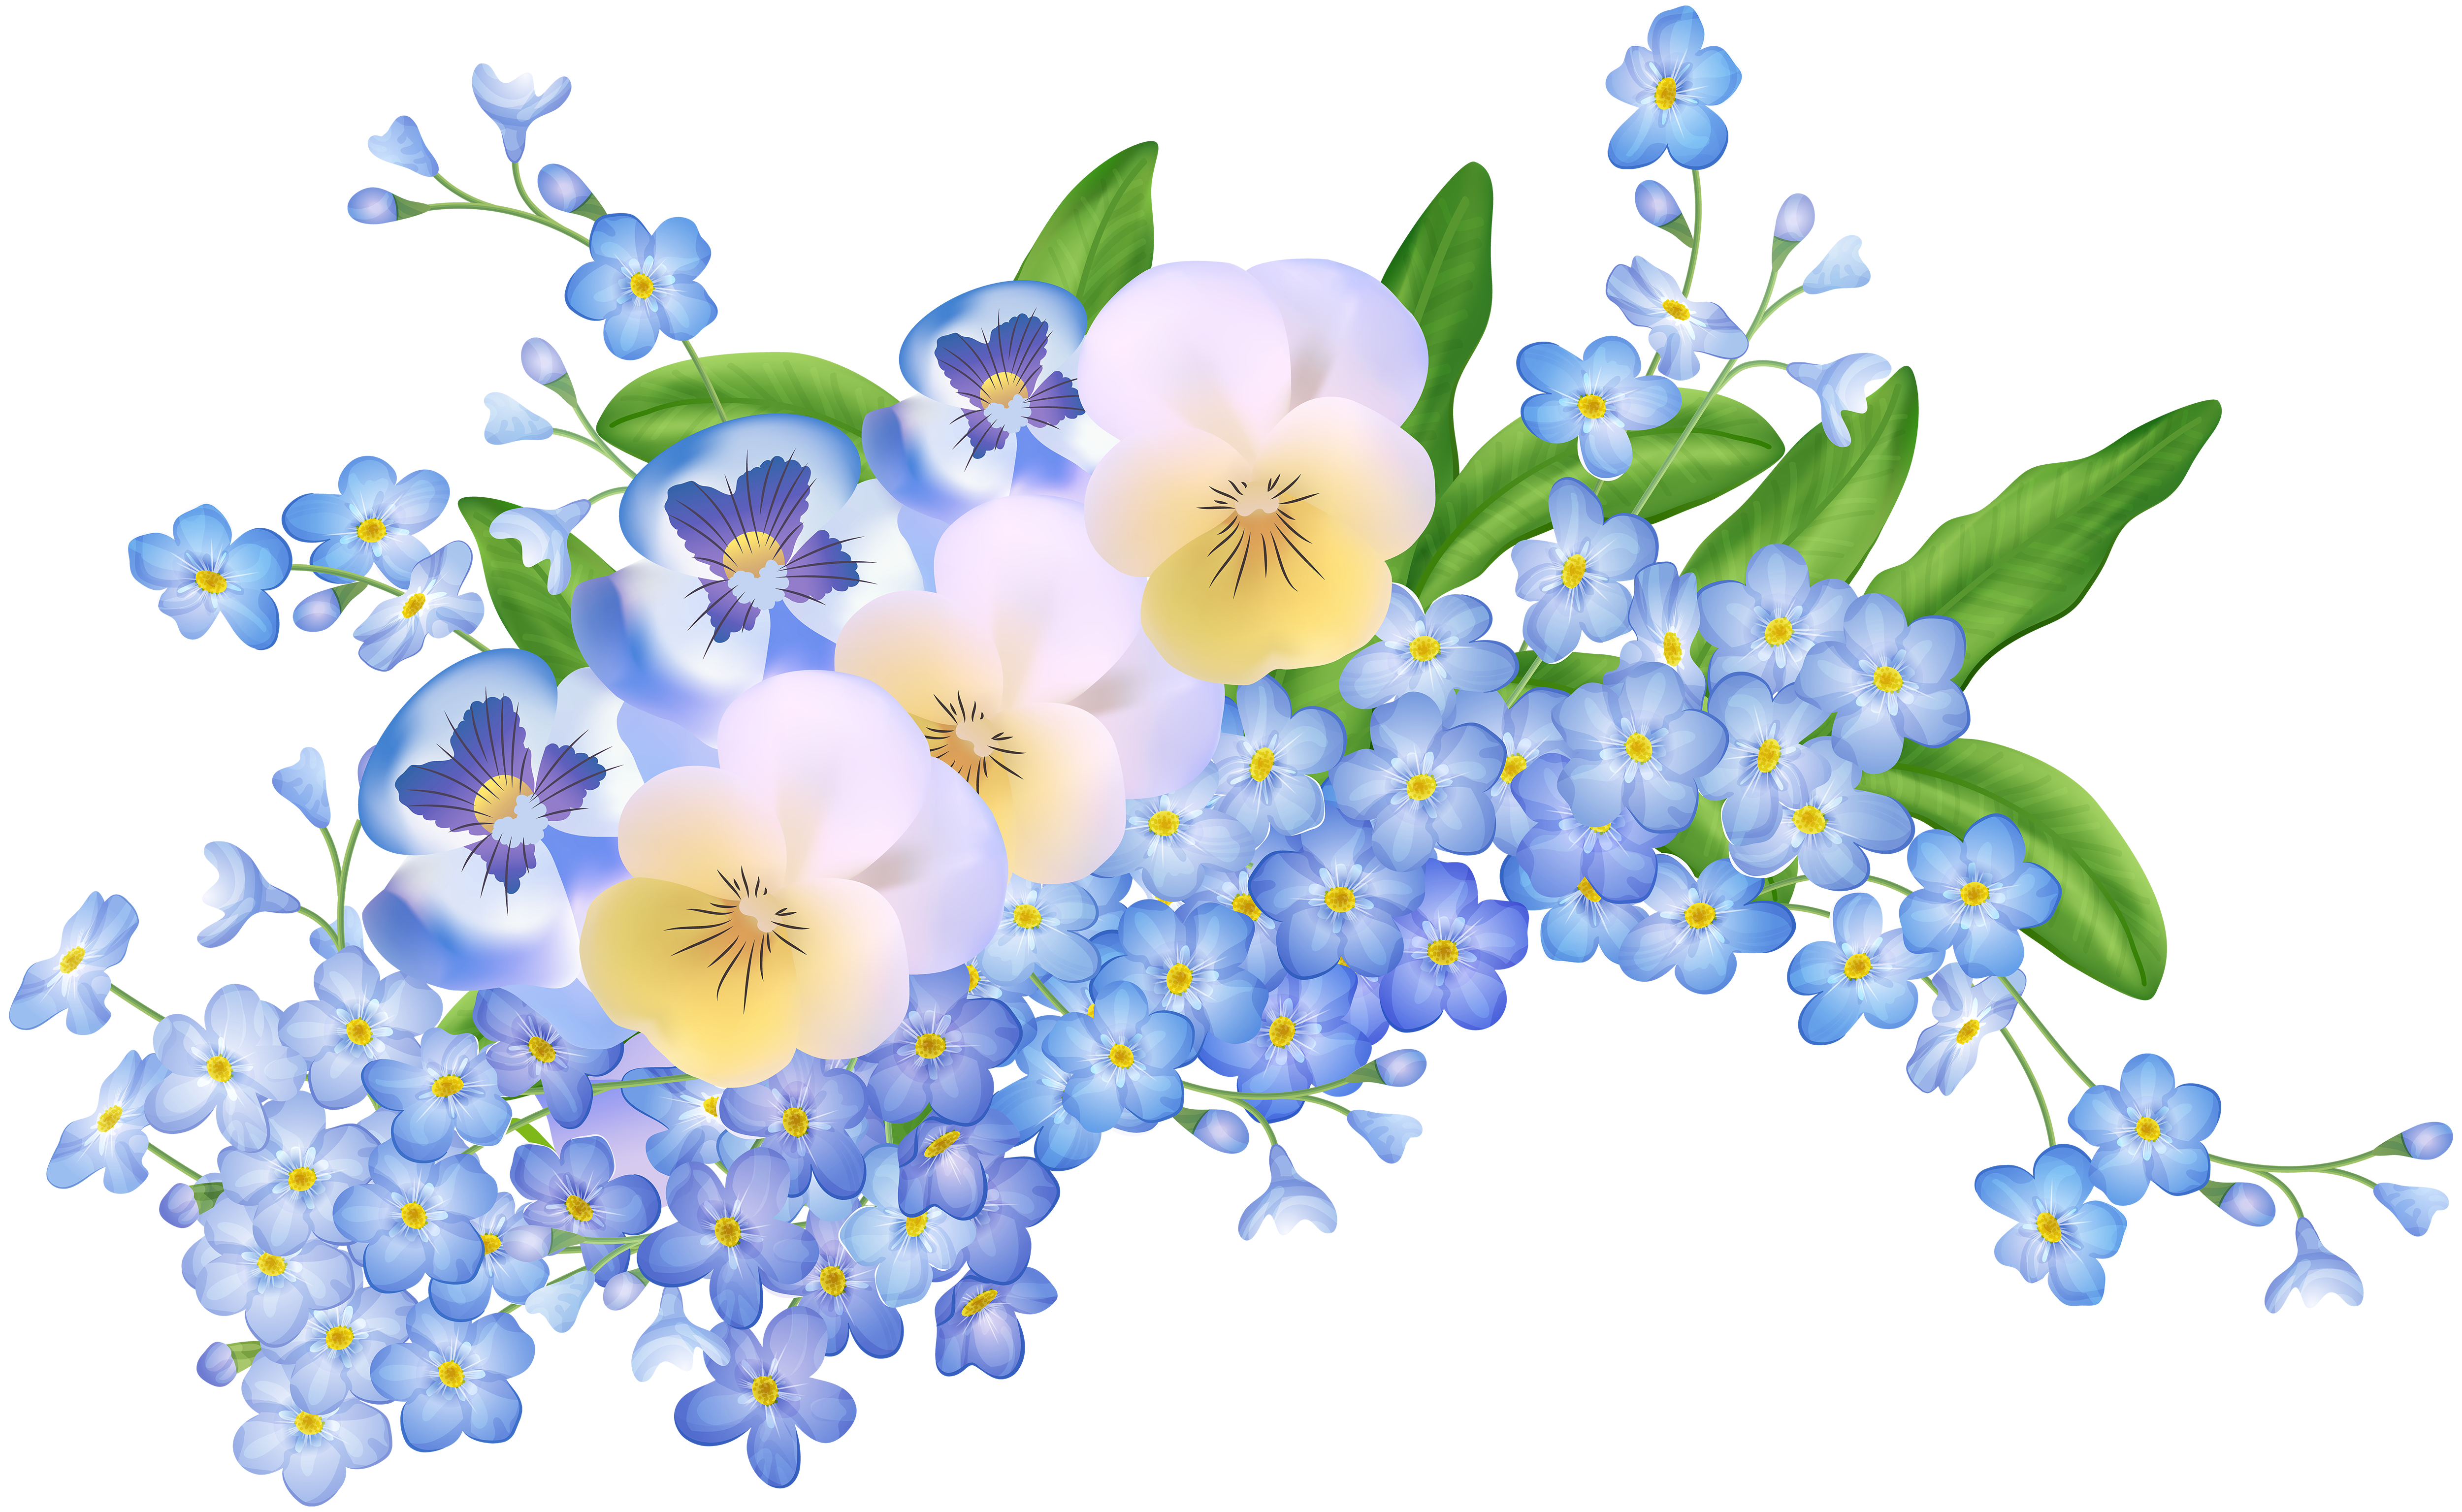 Free pictures of spring flowers vector black and white Spring Flowers Decoration Transparent PNG Clip Art Image | Gallery ... vector black and white